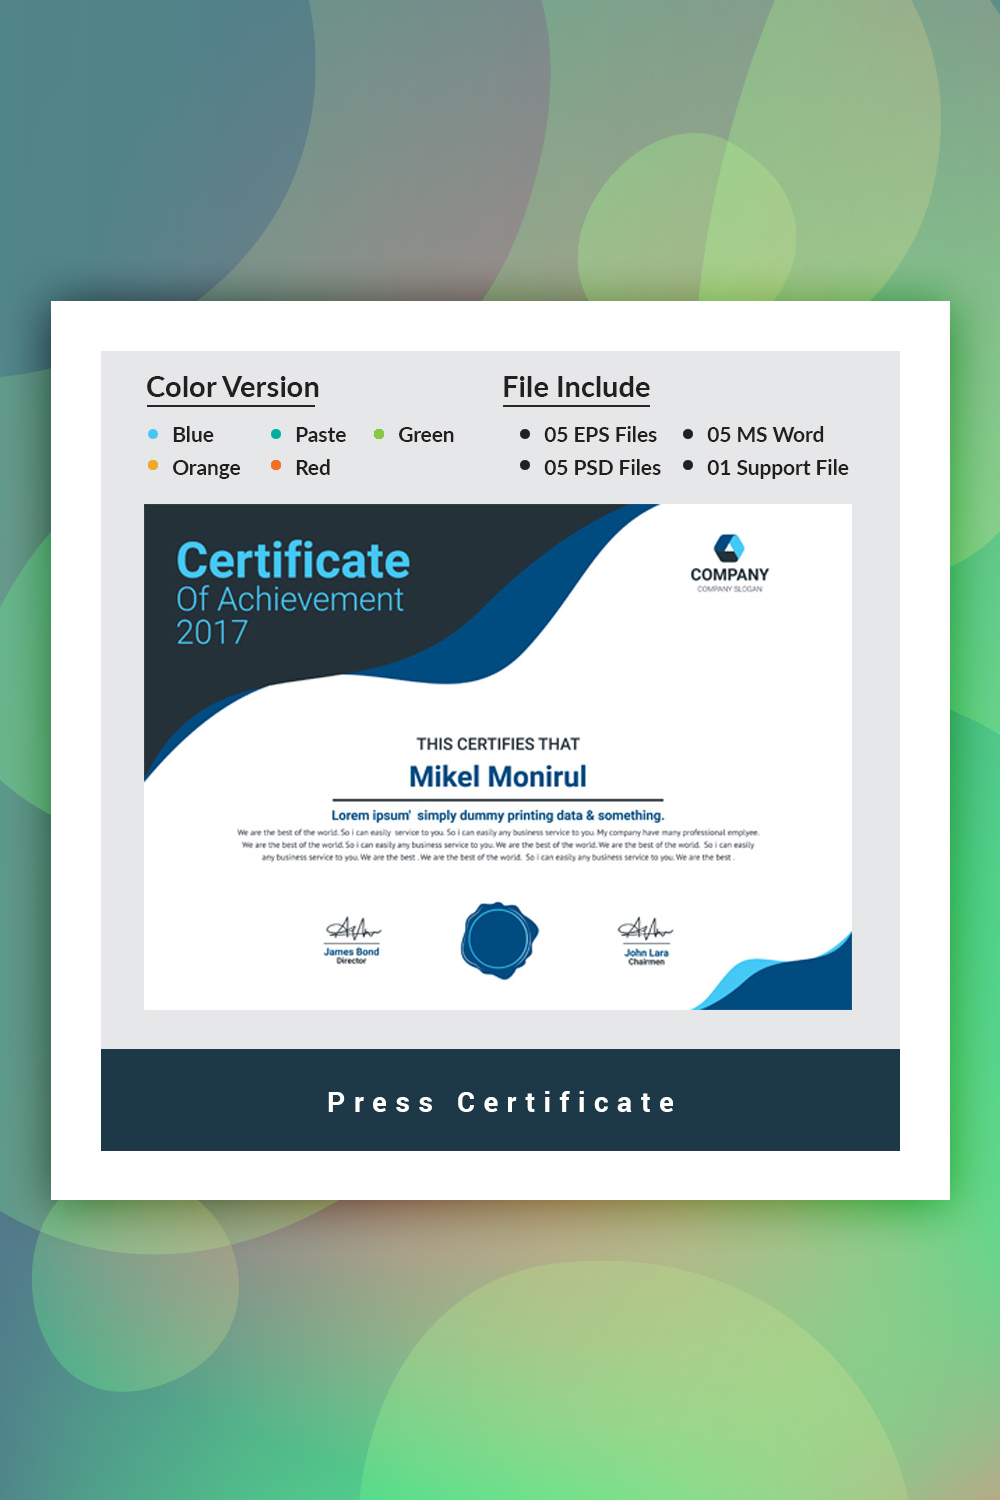 Press Certificate Template